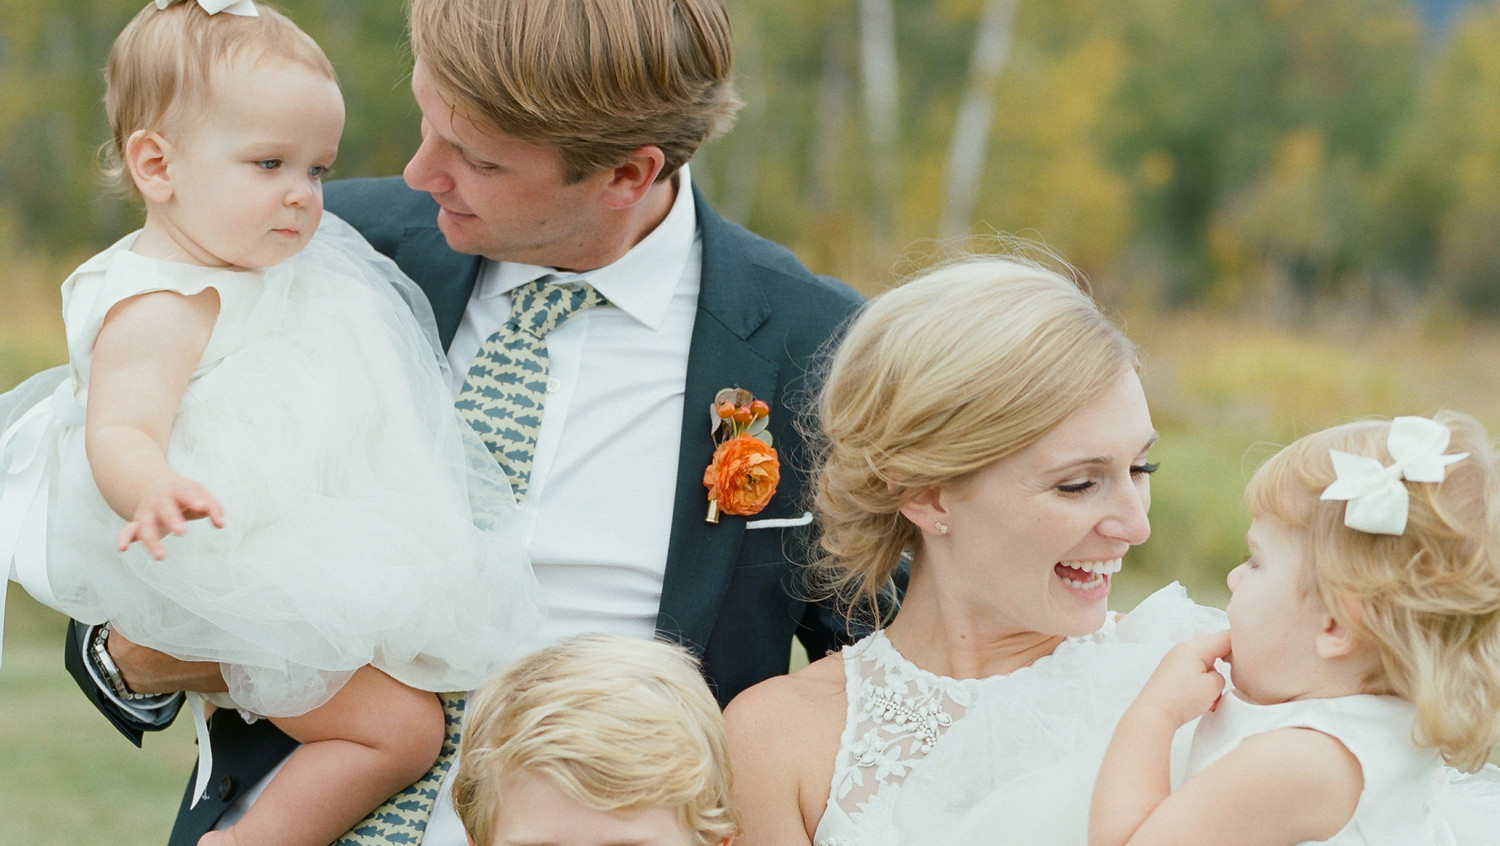 Martha Stewart Weddings: The Etiquette Of Having Children At Your Wedding